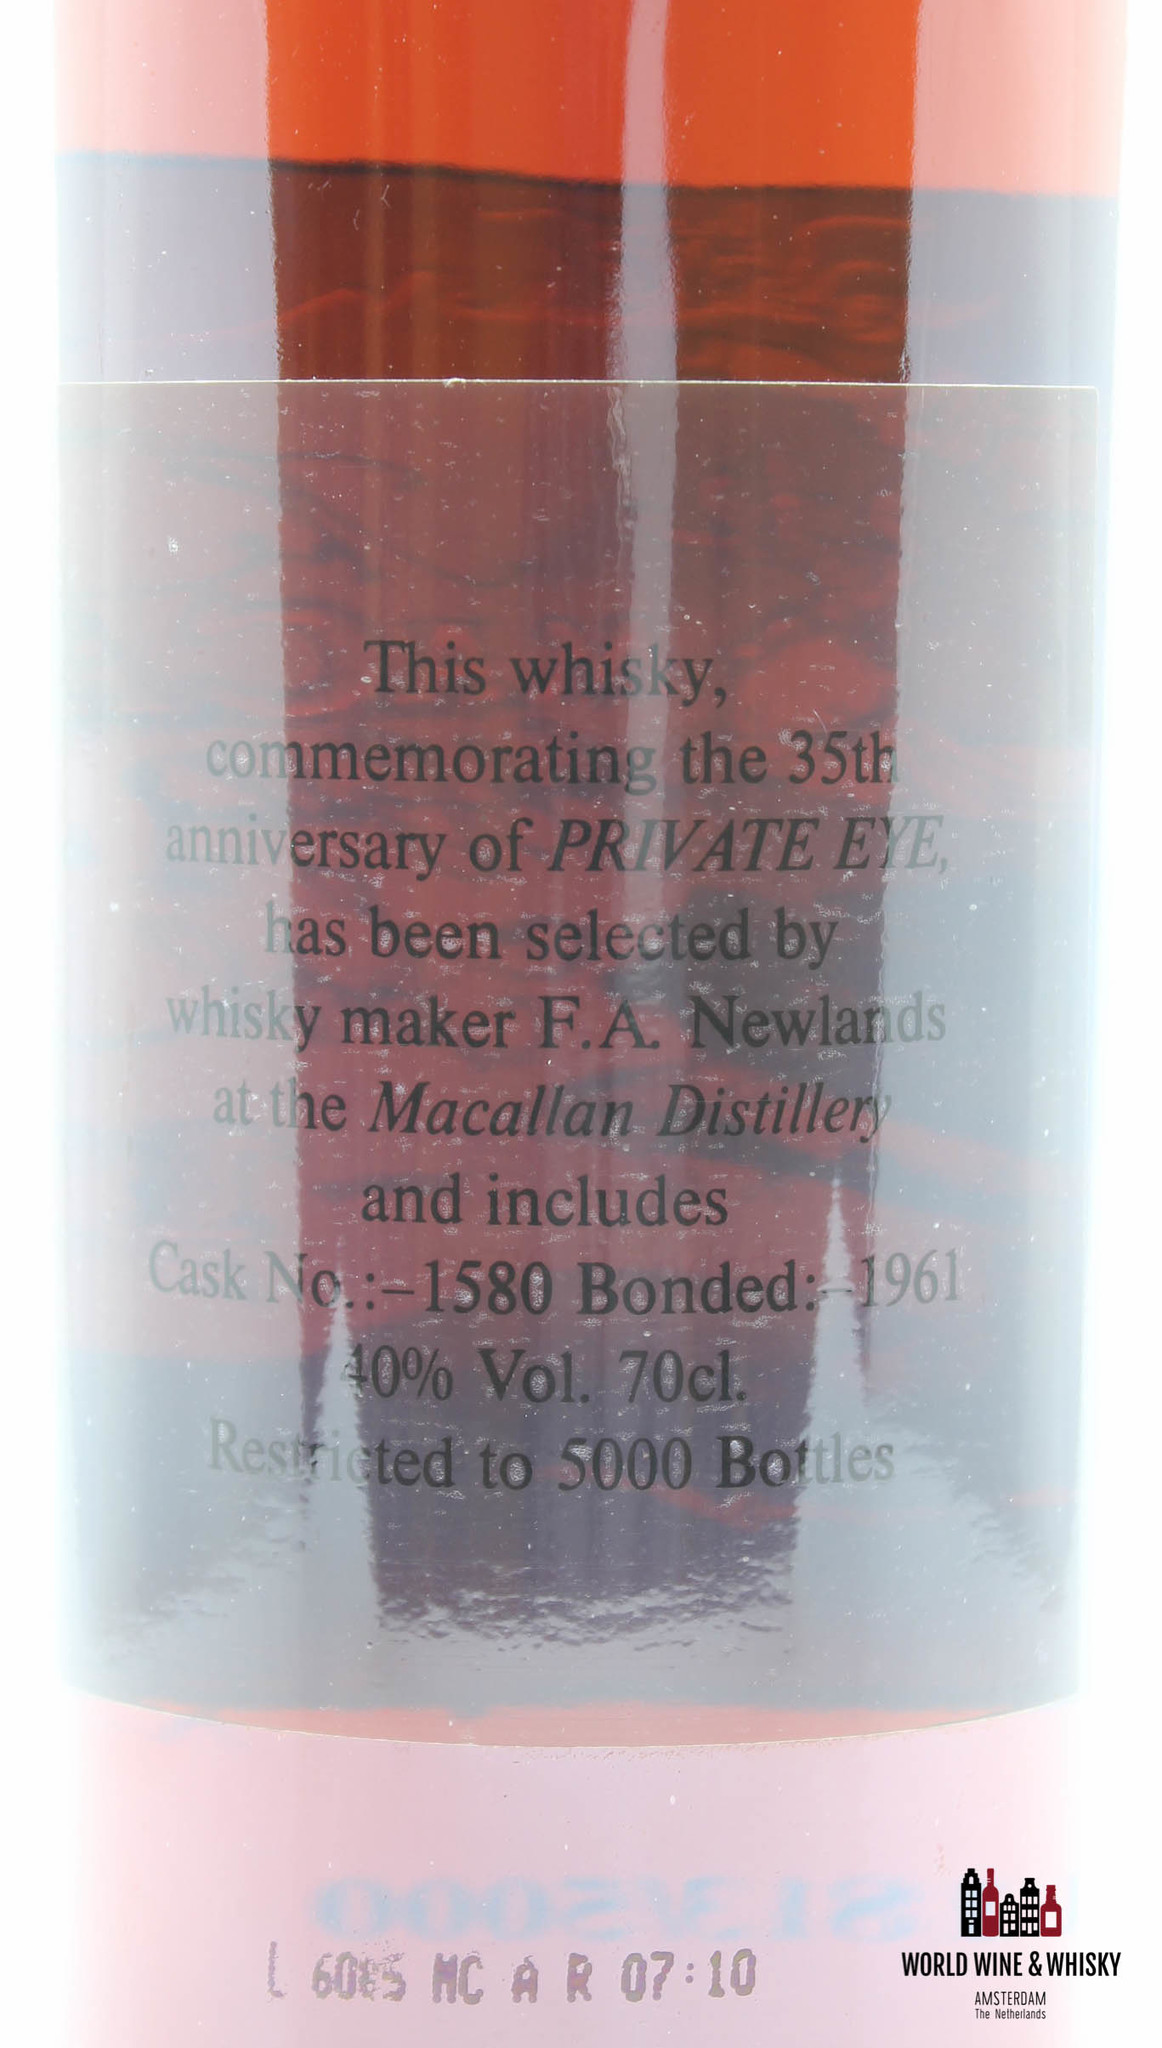 Macallan Macallan 35th Anniversary of Private Eye - Bonded 1961 - Cask 1580 40%